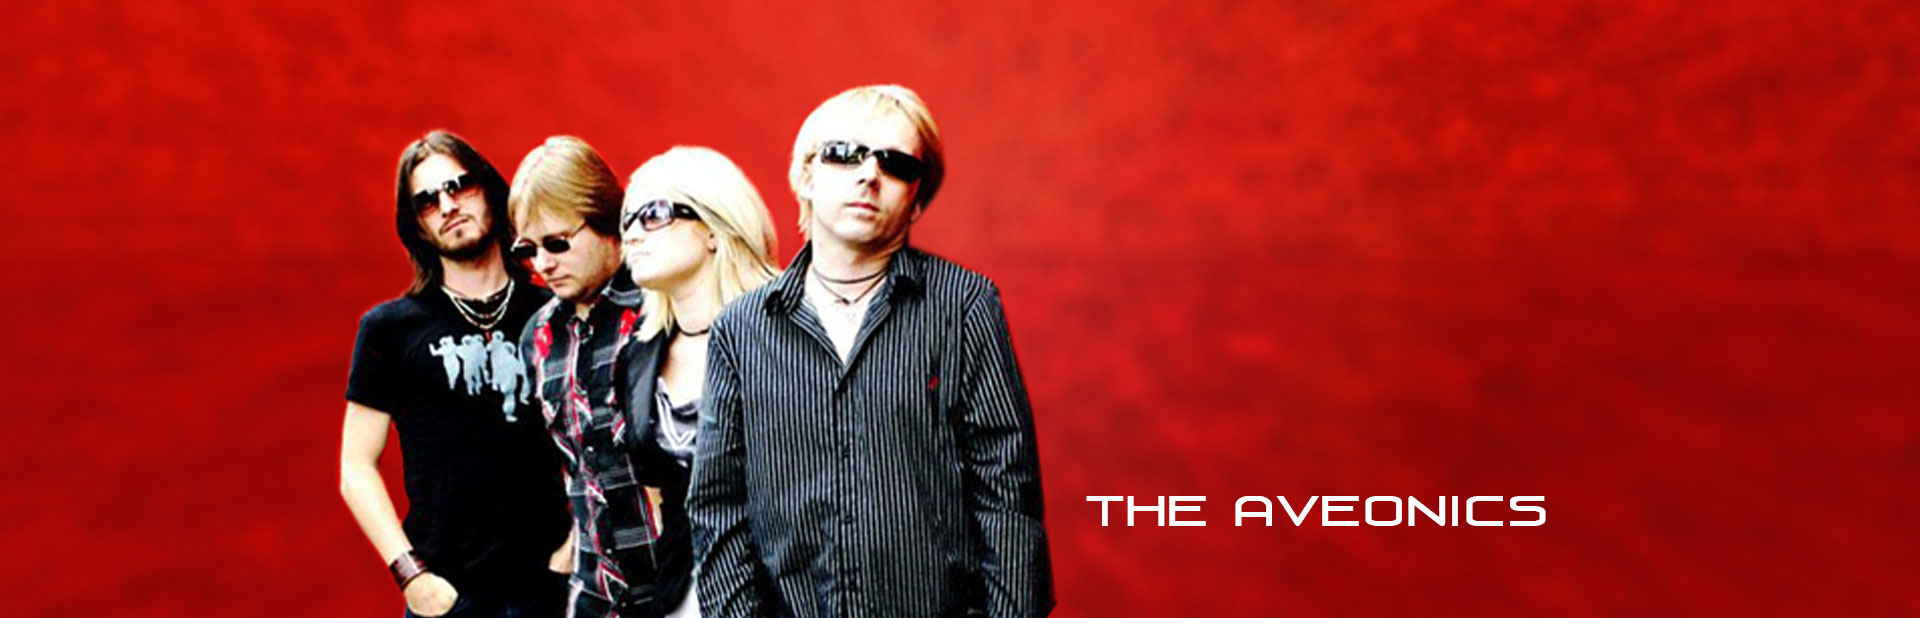 The Aveonics